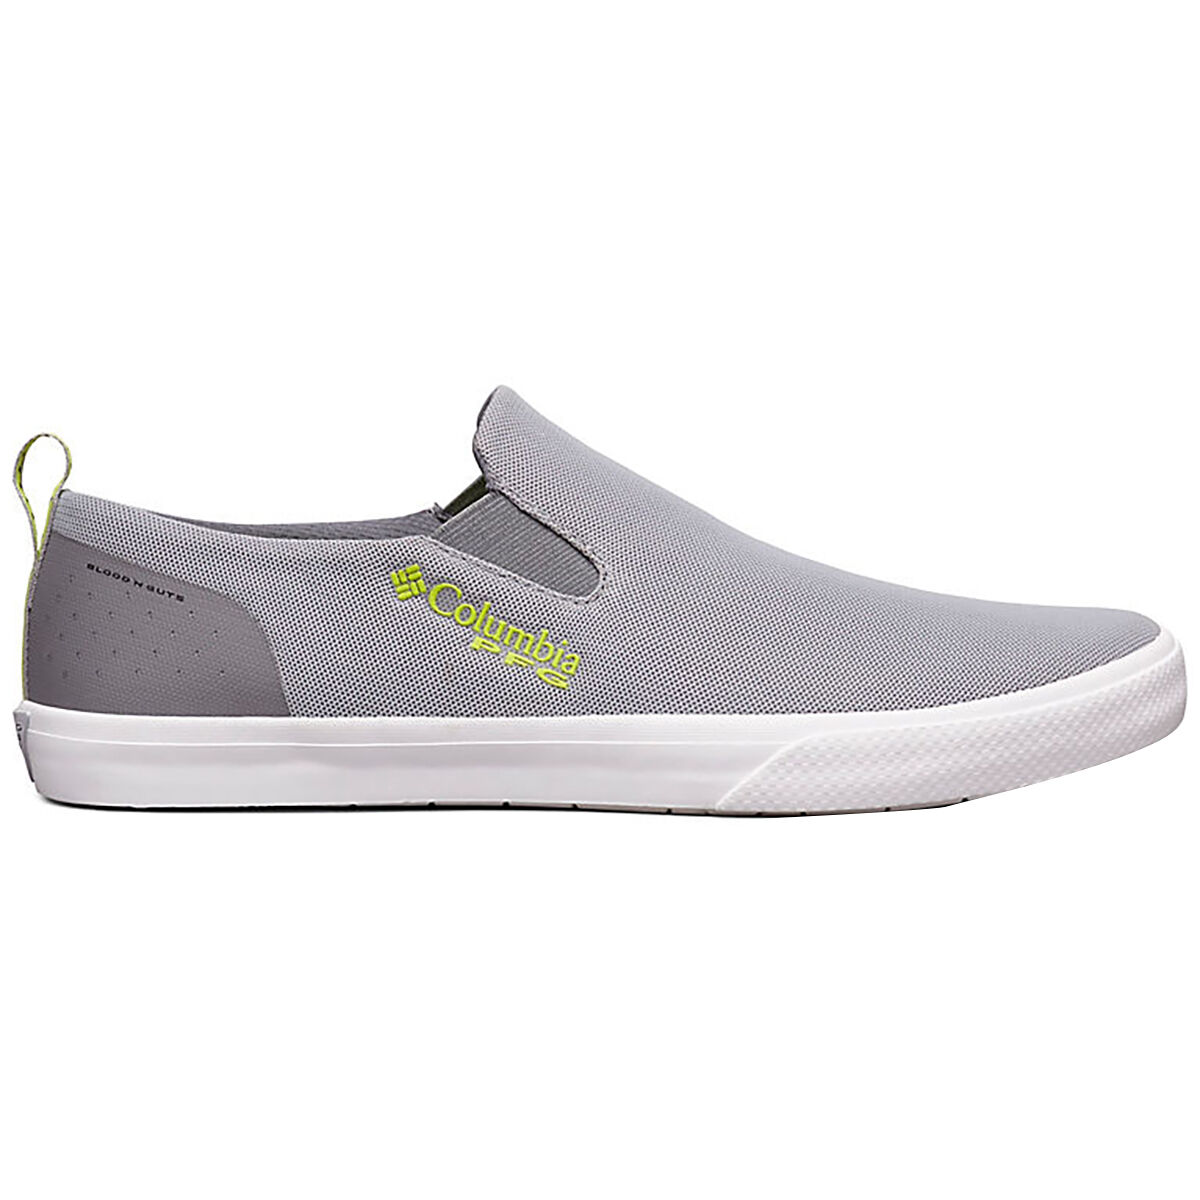 JSPOYOU Mens Casual Slip-On Sport Shoes Sneaker Comfortable Loafers Shoes